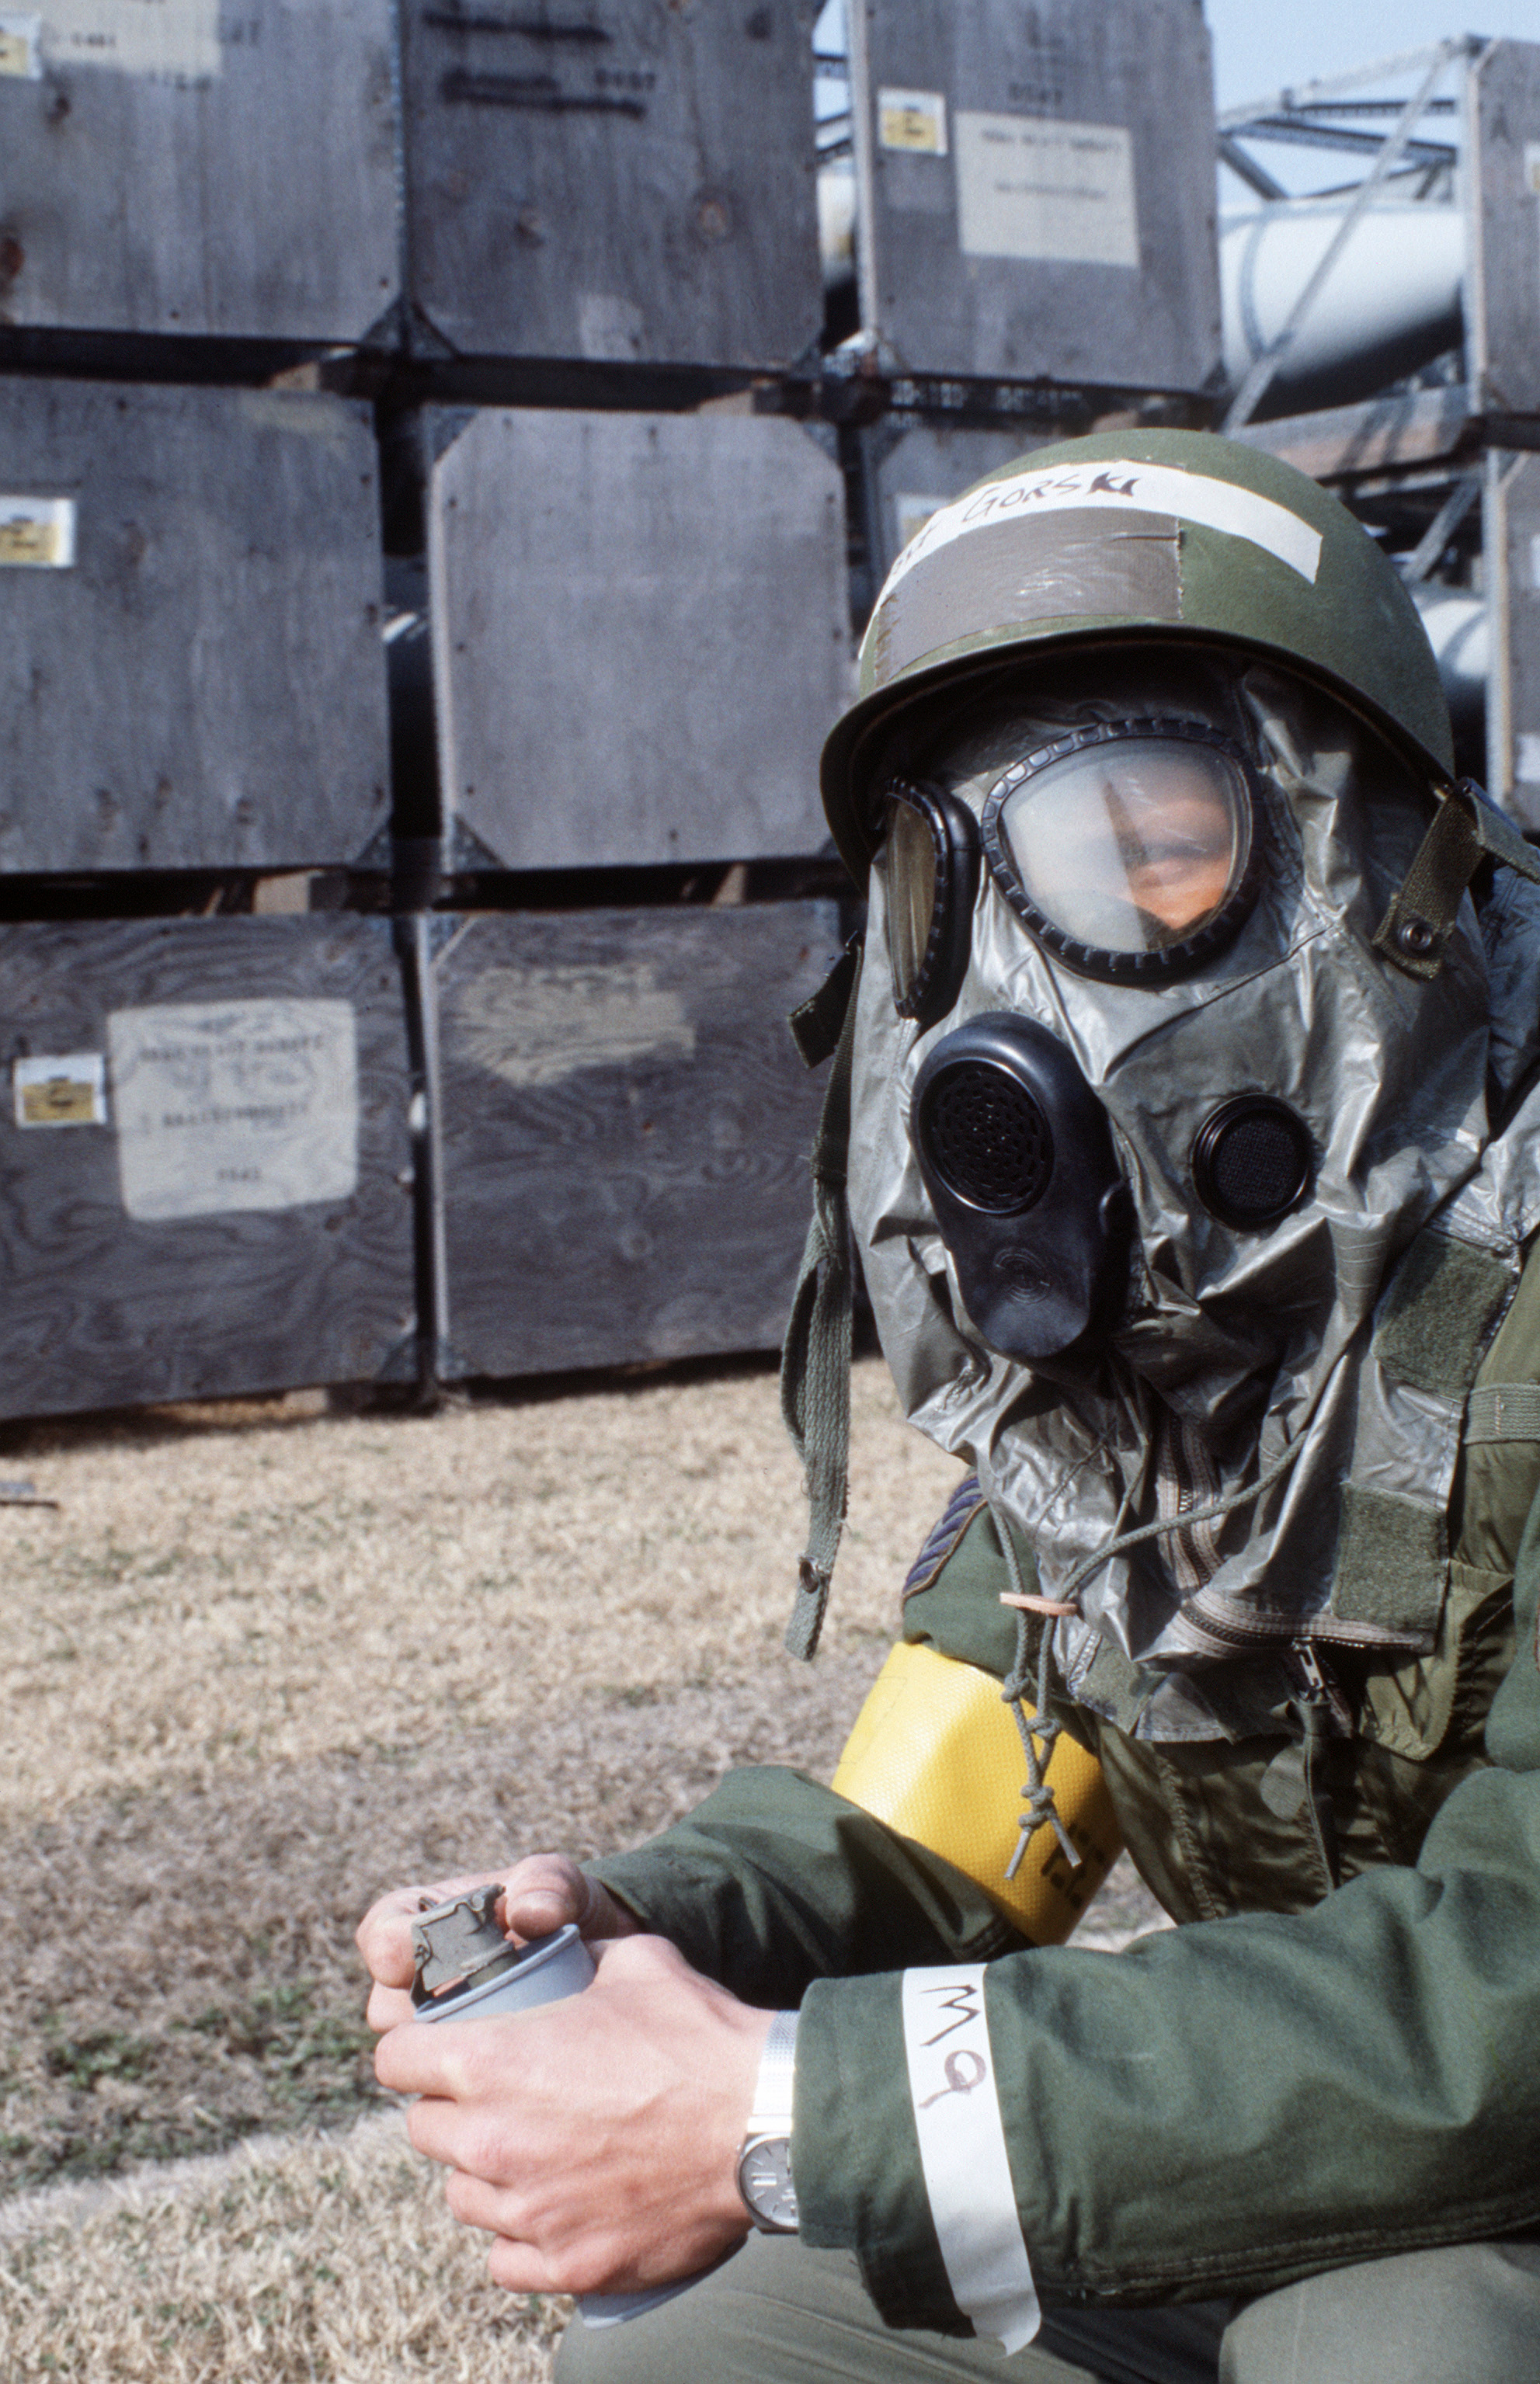 a look at the new face of warfare chemical and biological warfare What you should know in deciding whether to buy escape hoods, gas masks, or other respirators for preparedness at home and work some employers and consumers are considering purchasing escape hoods or other respirators to protect themselves against potential terrorist threats, including biological and chemical substances.